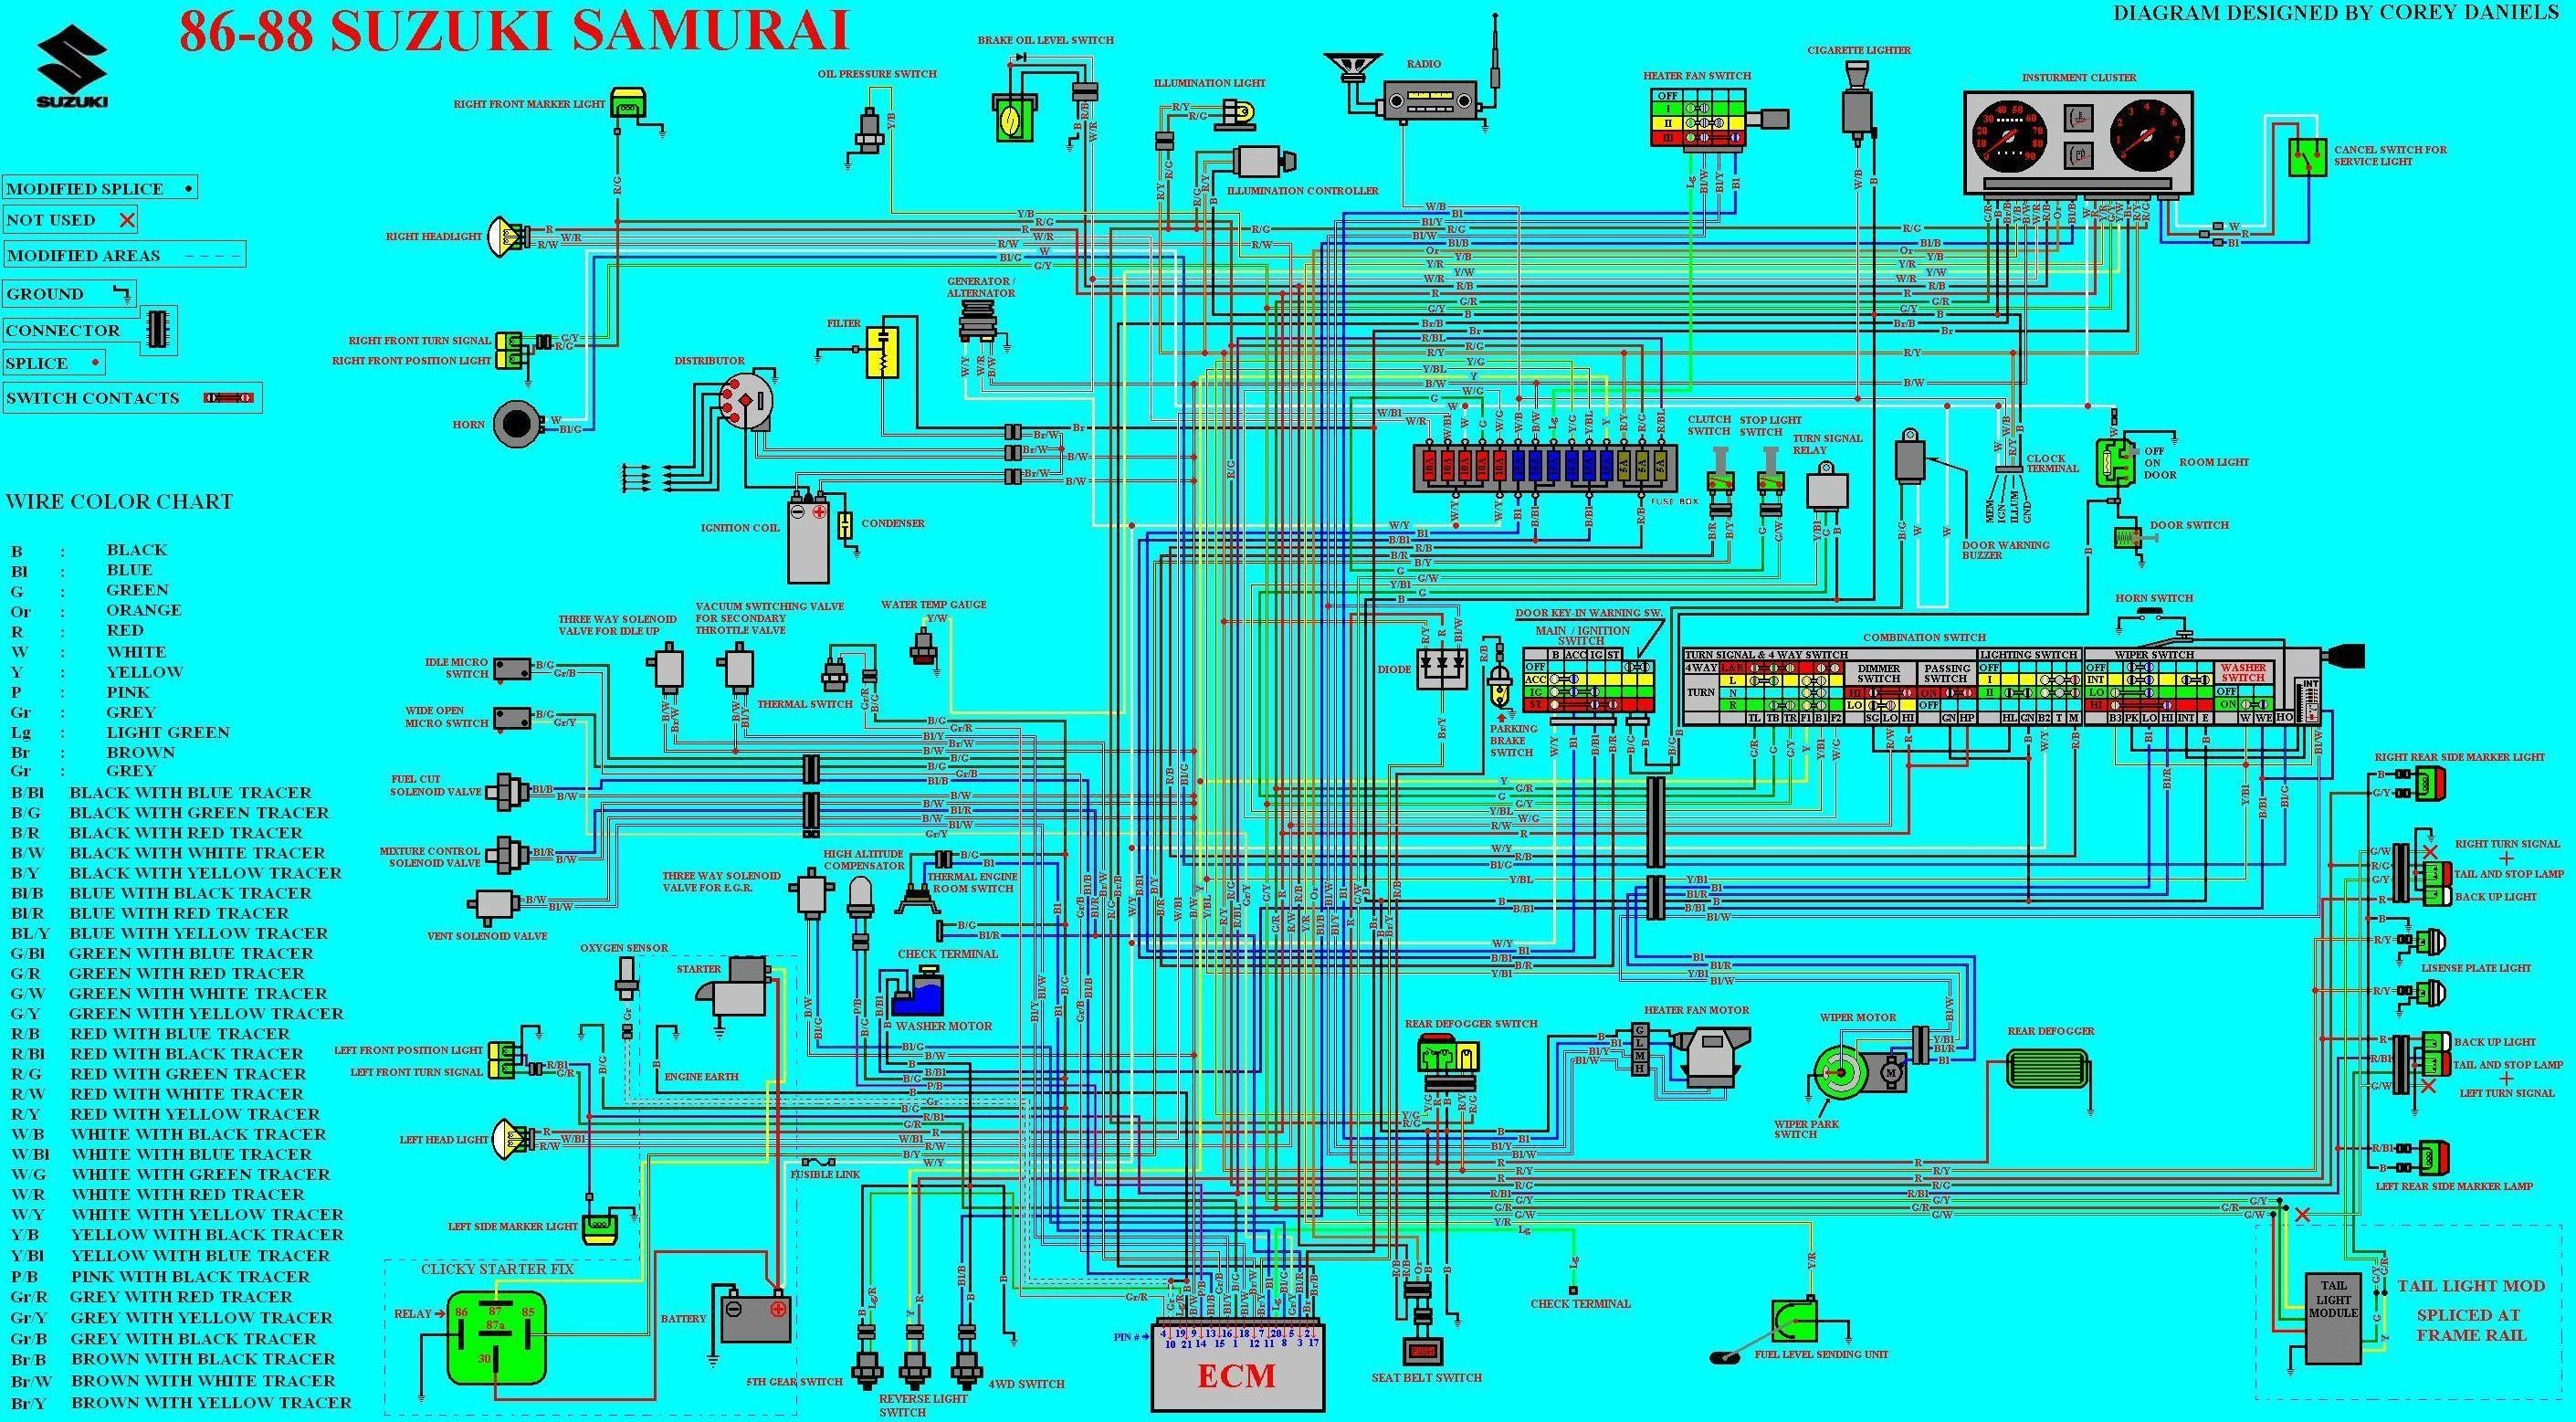 medium resolution of unique vn alternator wiring diagram diagrams digramssample diagramimages wiringdiagramsample wiringdiagram